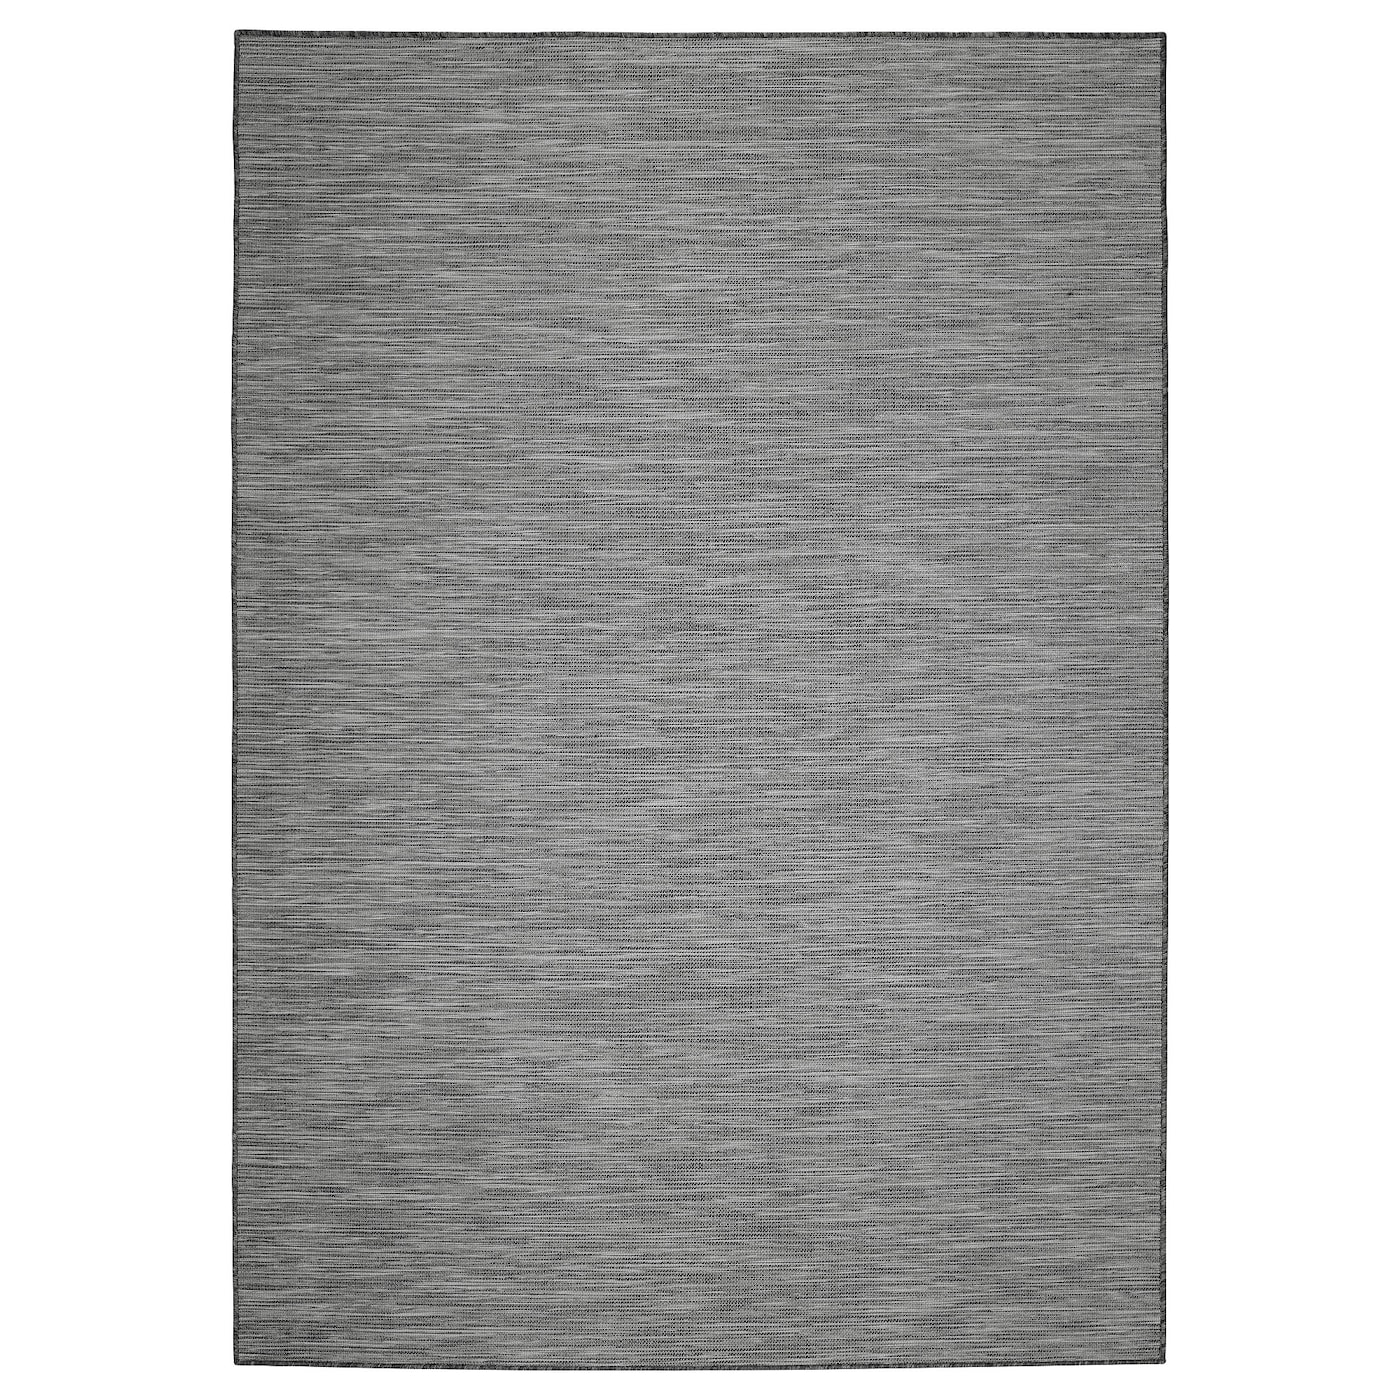 hodde tapis tiss plat int ext rieur gris noir 160x230 cm ikea. Black Bedroom Furniture Sets. Home Design Ideas